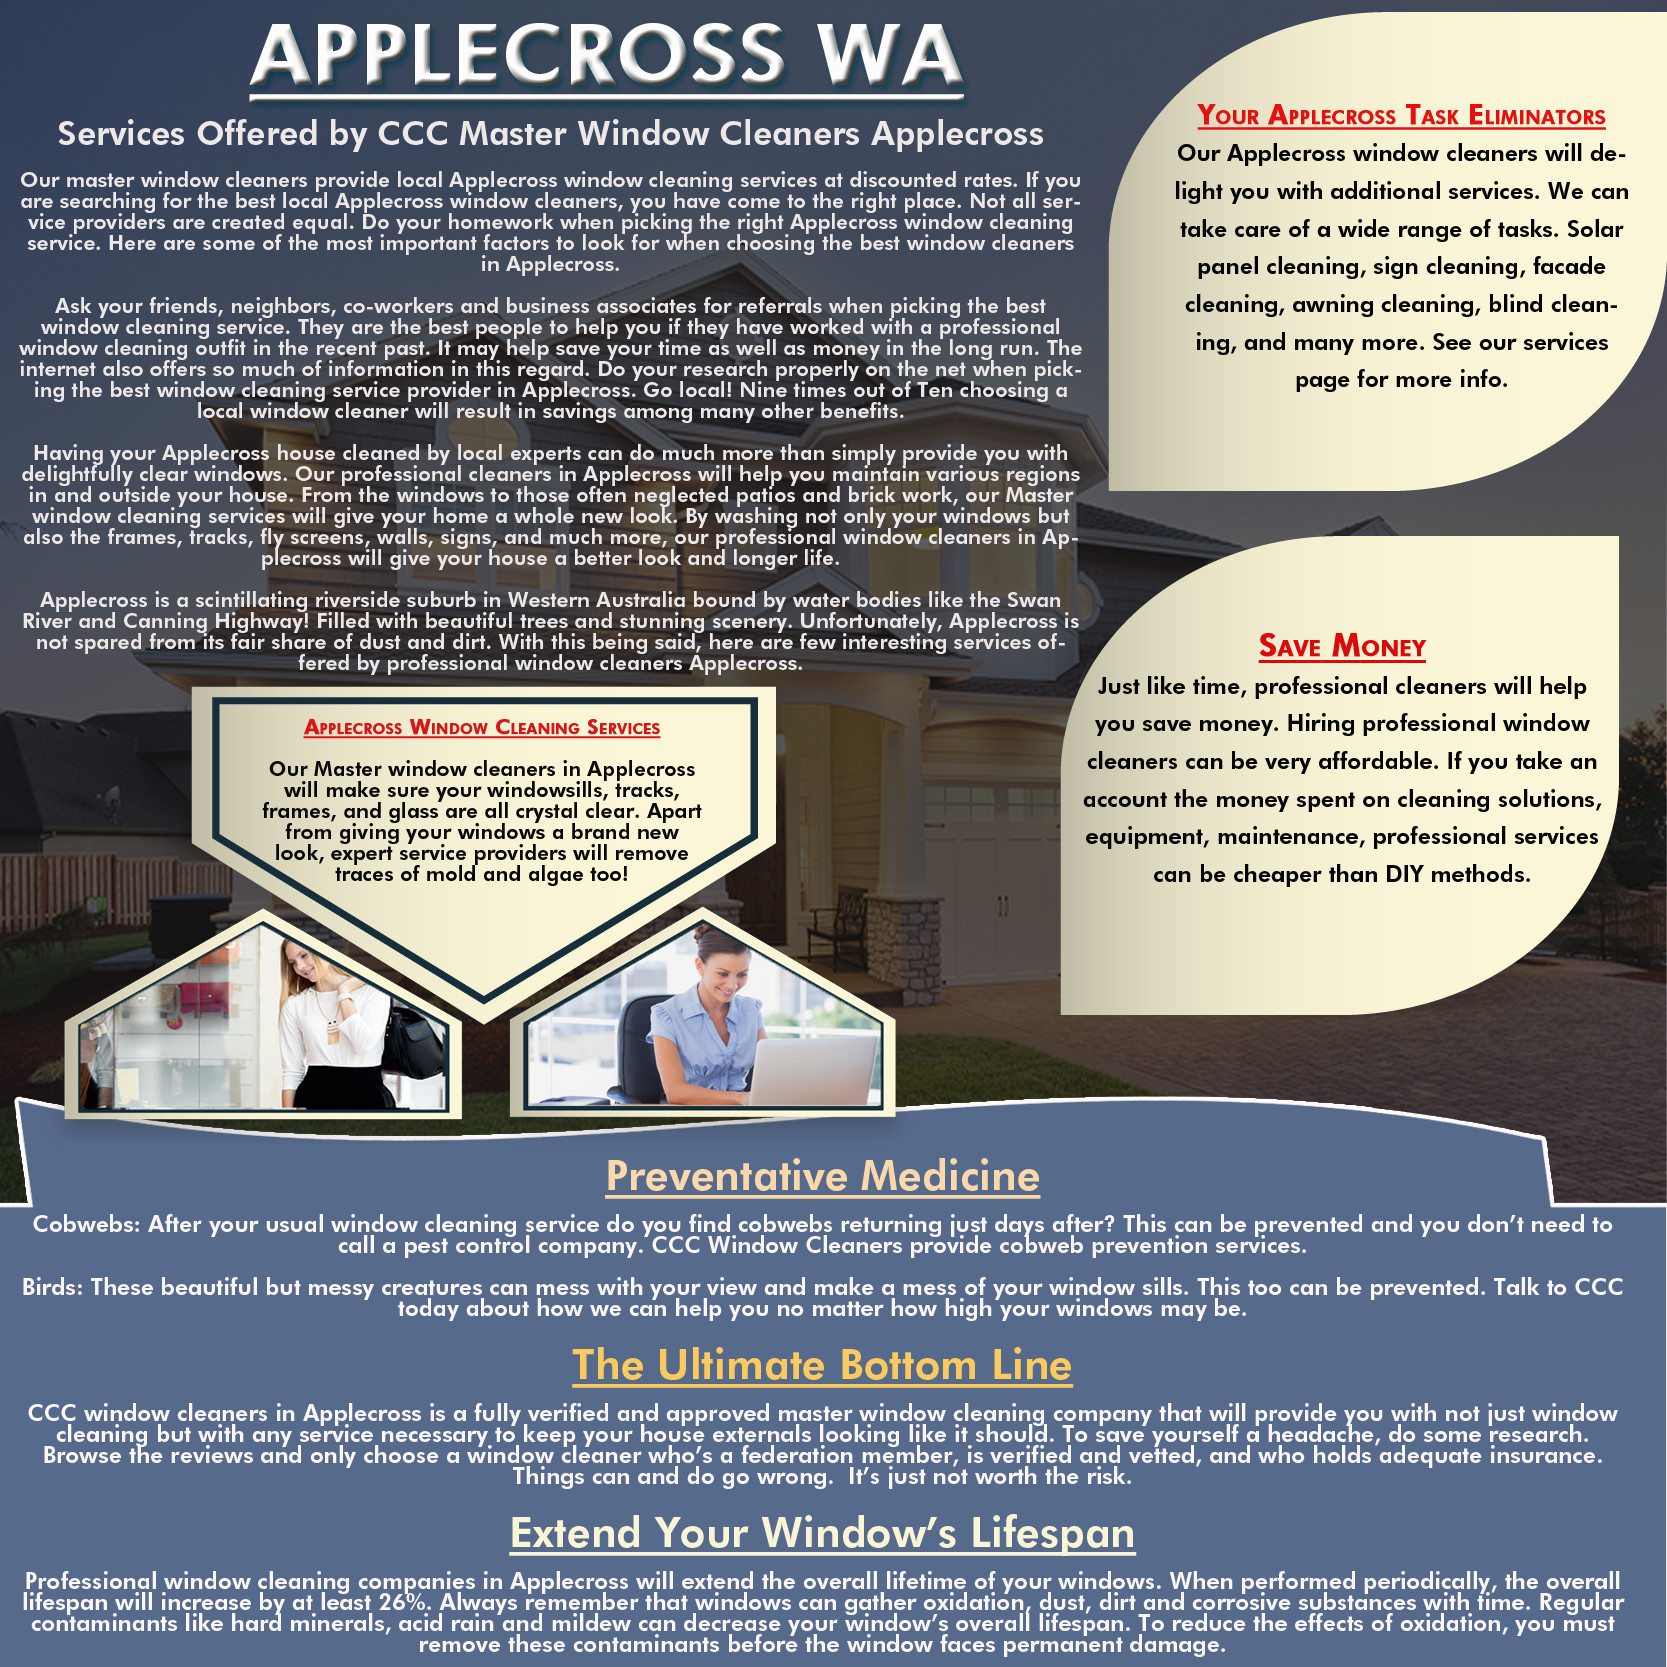 Our Applecross Window Cleaning Services